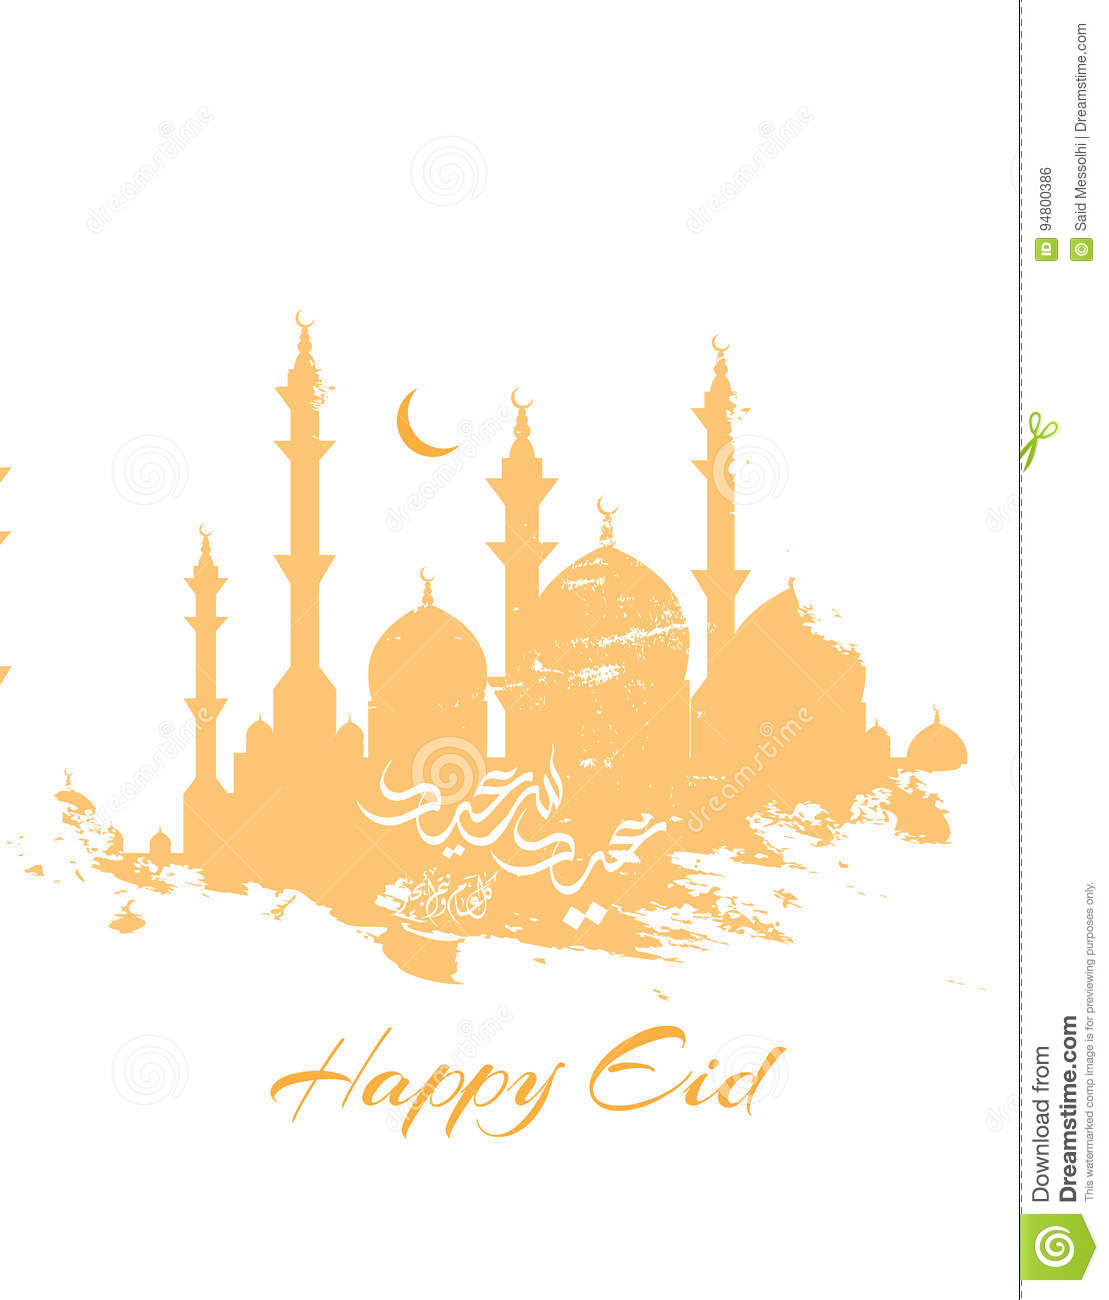 Greetings card on the occasion of eid al fitr to the muslims stock greetings card on the occasion of eid al fitr to the muslims culture mosque kristyandbryce Image collections